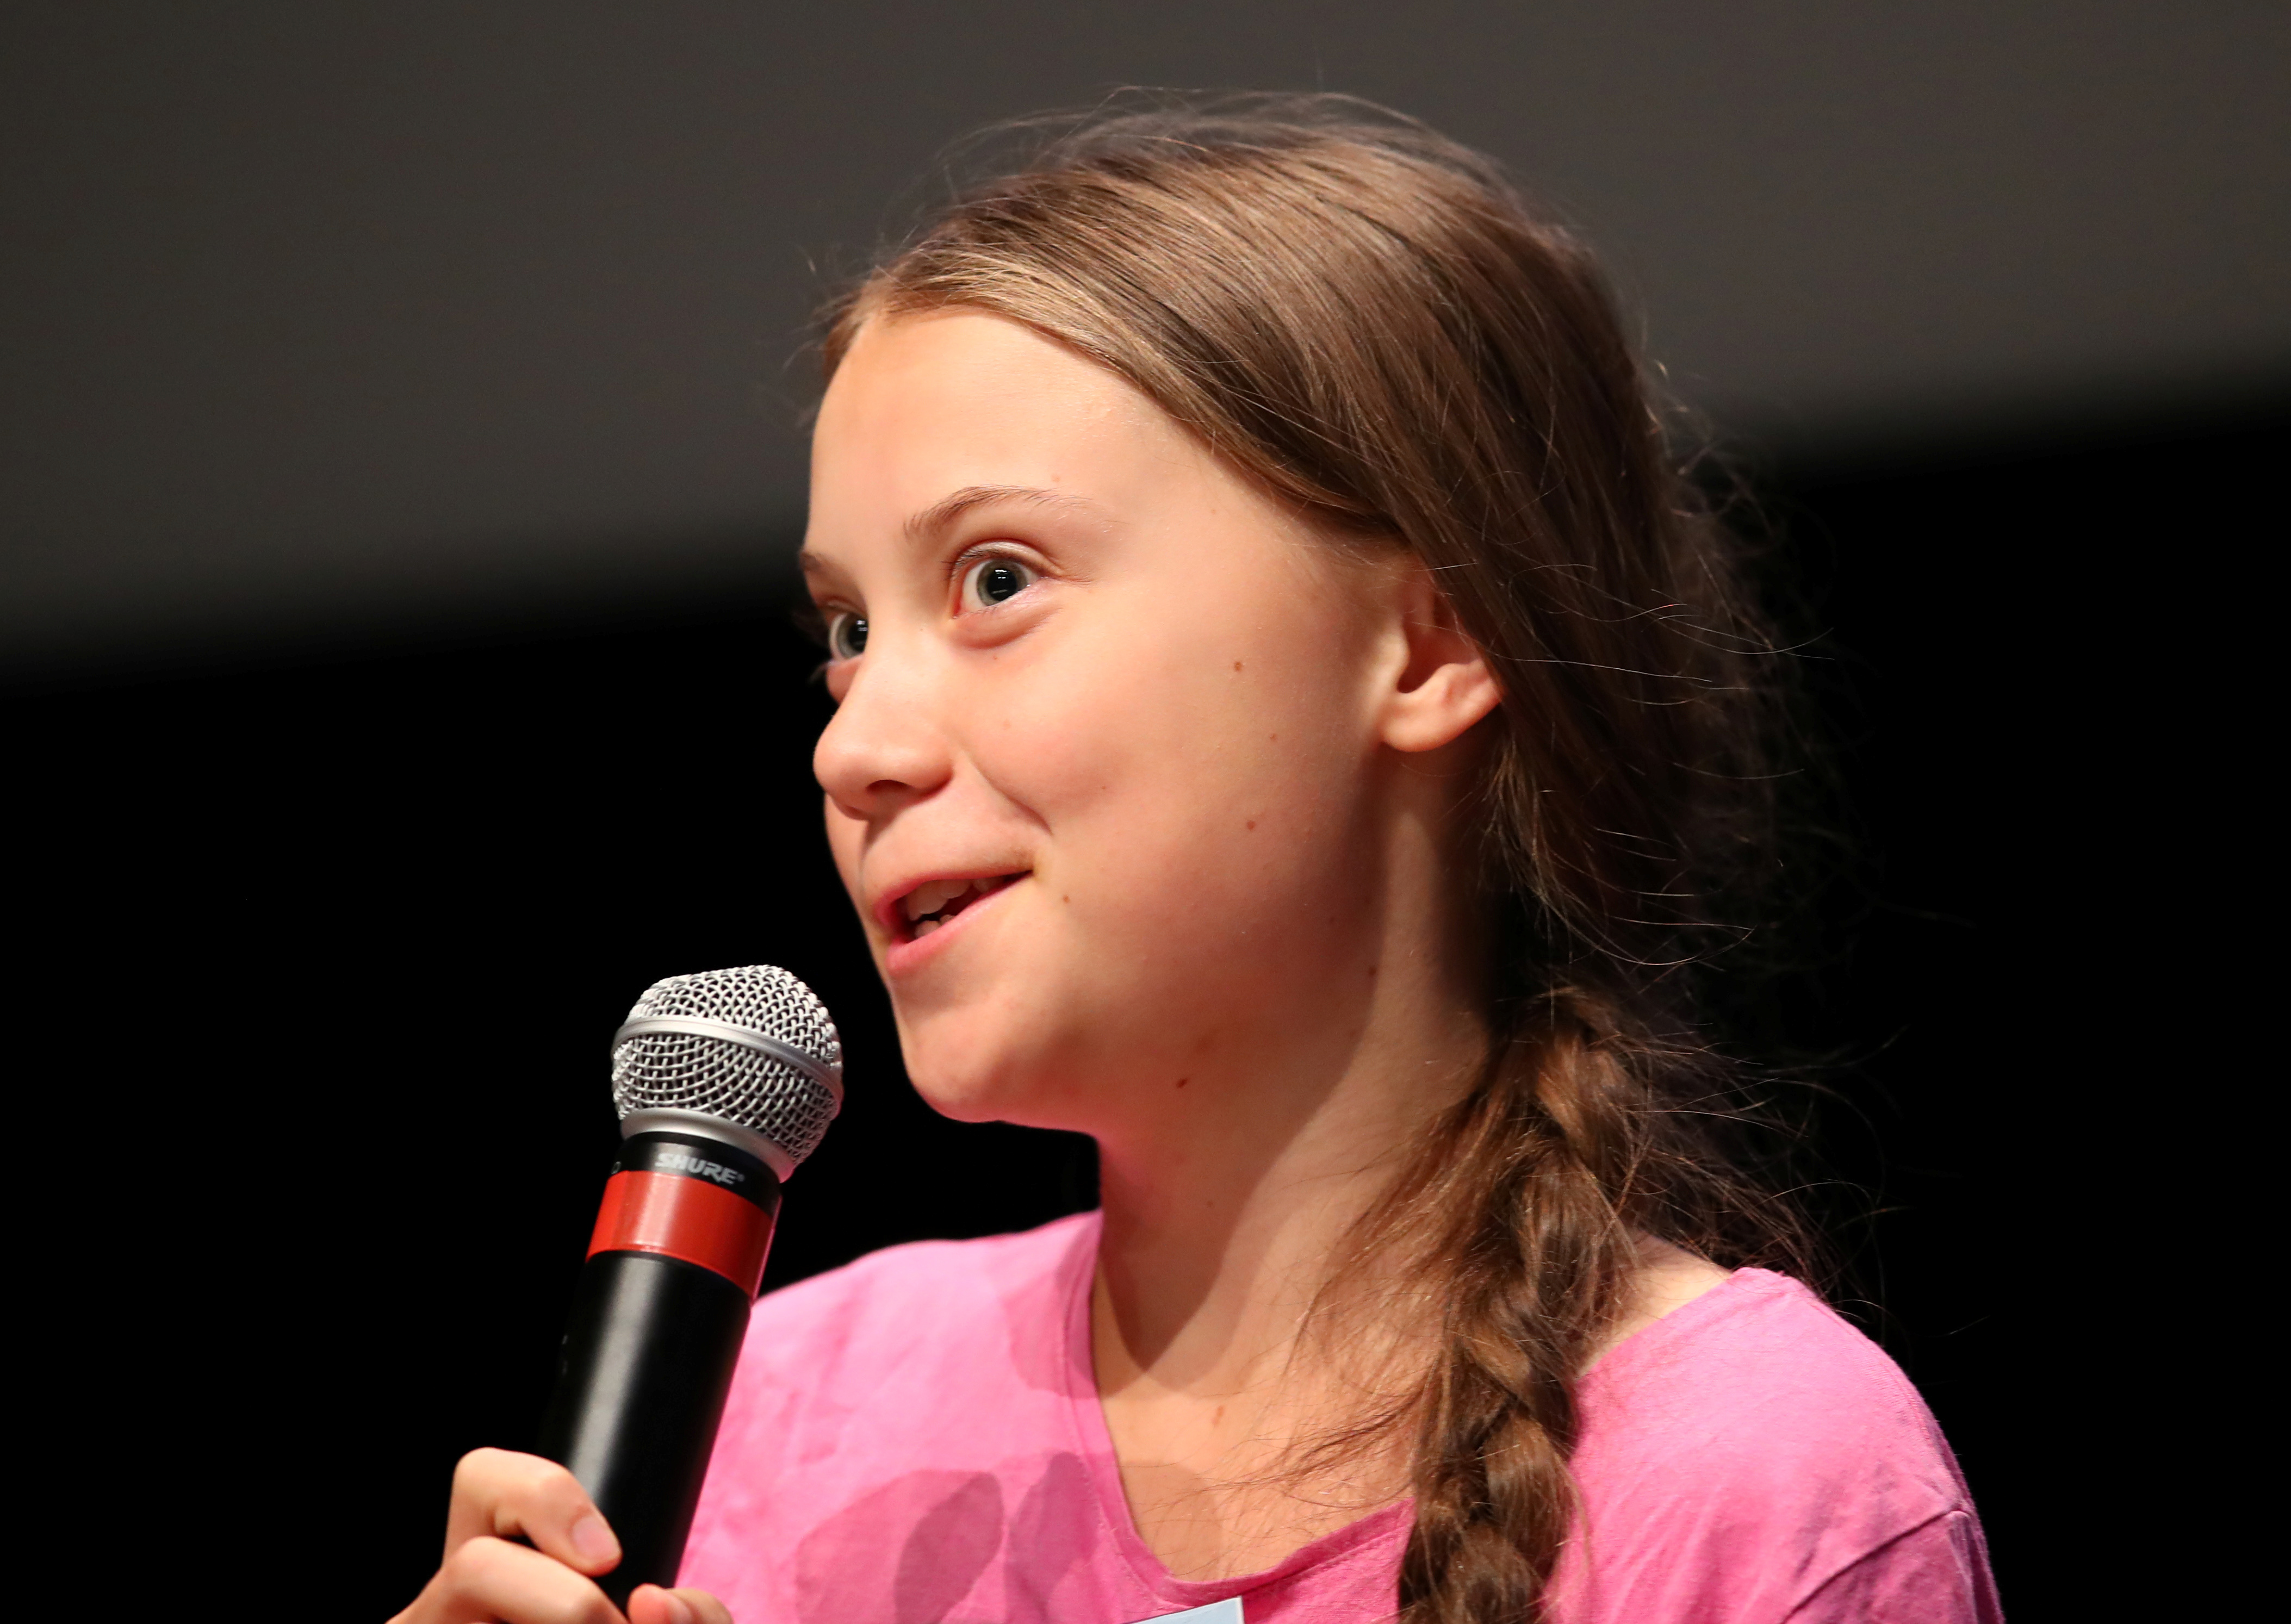 Swedish teenage climate activist Greta Thunberg attends a news conference  at the SMILE meeting (Summer Meeting In Lausanne Europe), with other young climate strike activists from 37 European countries of the FridaysforFuture movement in Lausanne, Switzerland, August 5, 2019. REUTERS/Denis Balibouse